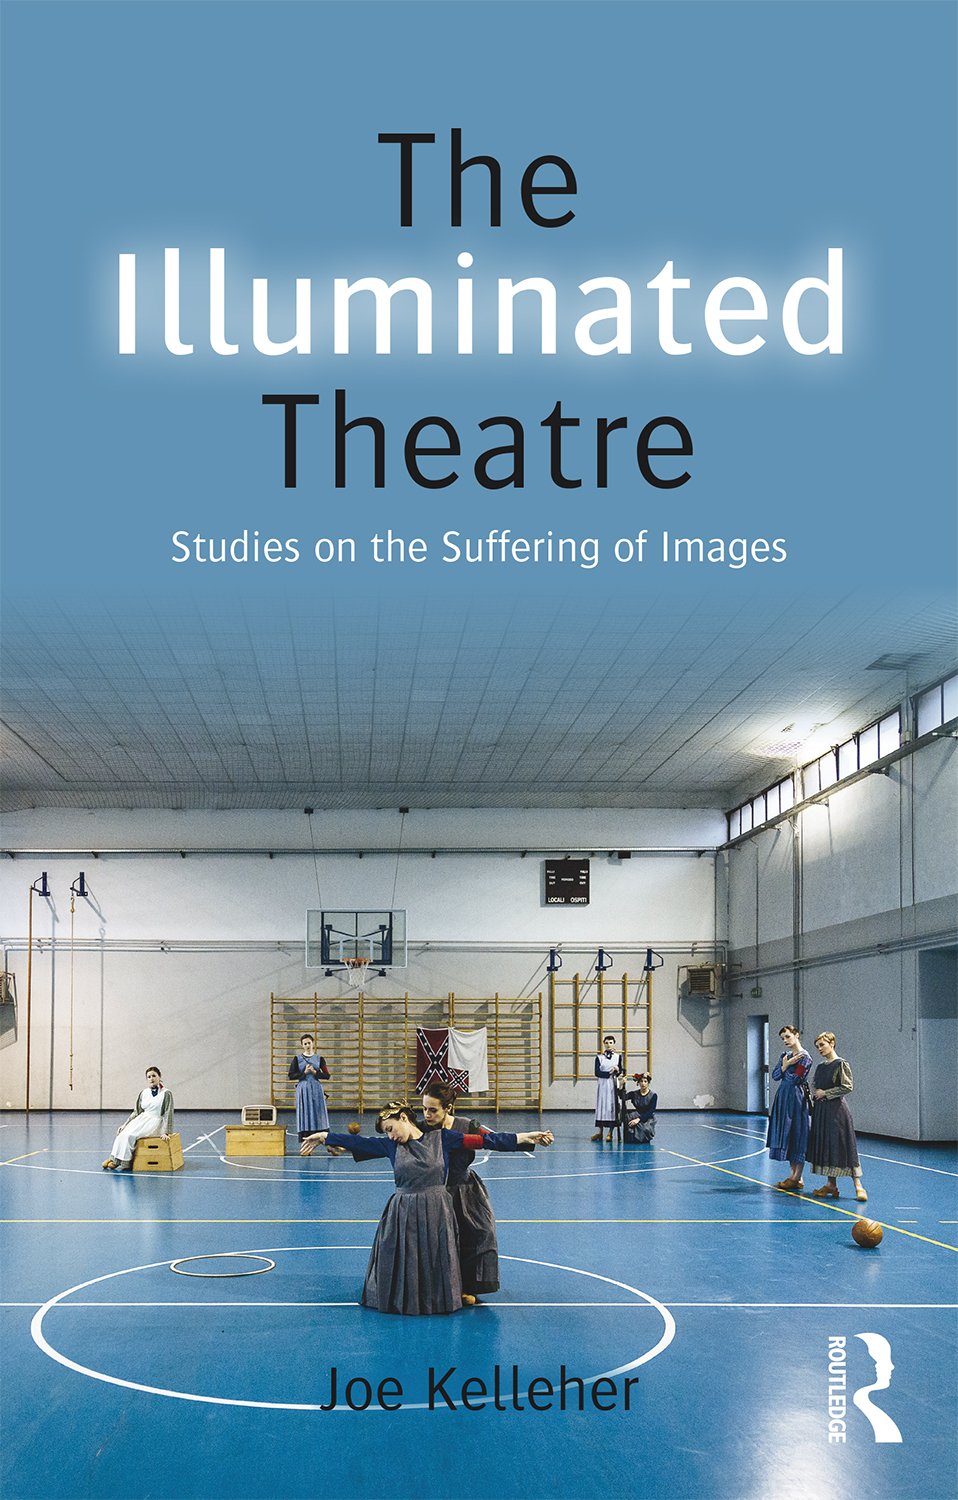 Joe Kelleher |The Illuminated Theatre.Studies on the Suffering of Images    Book Cover   Routledge, 2015